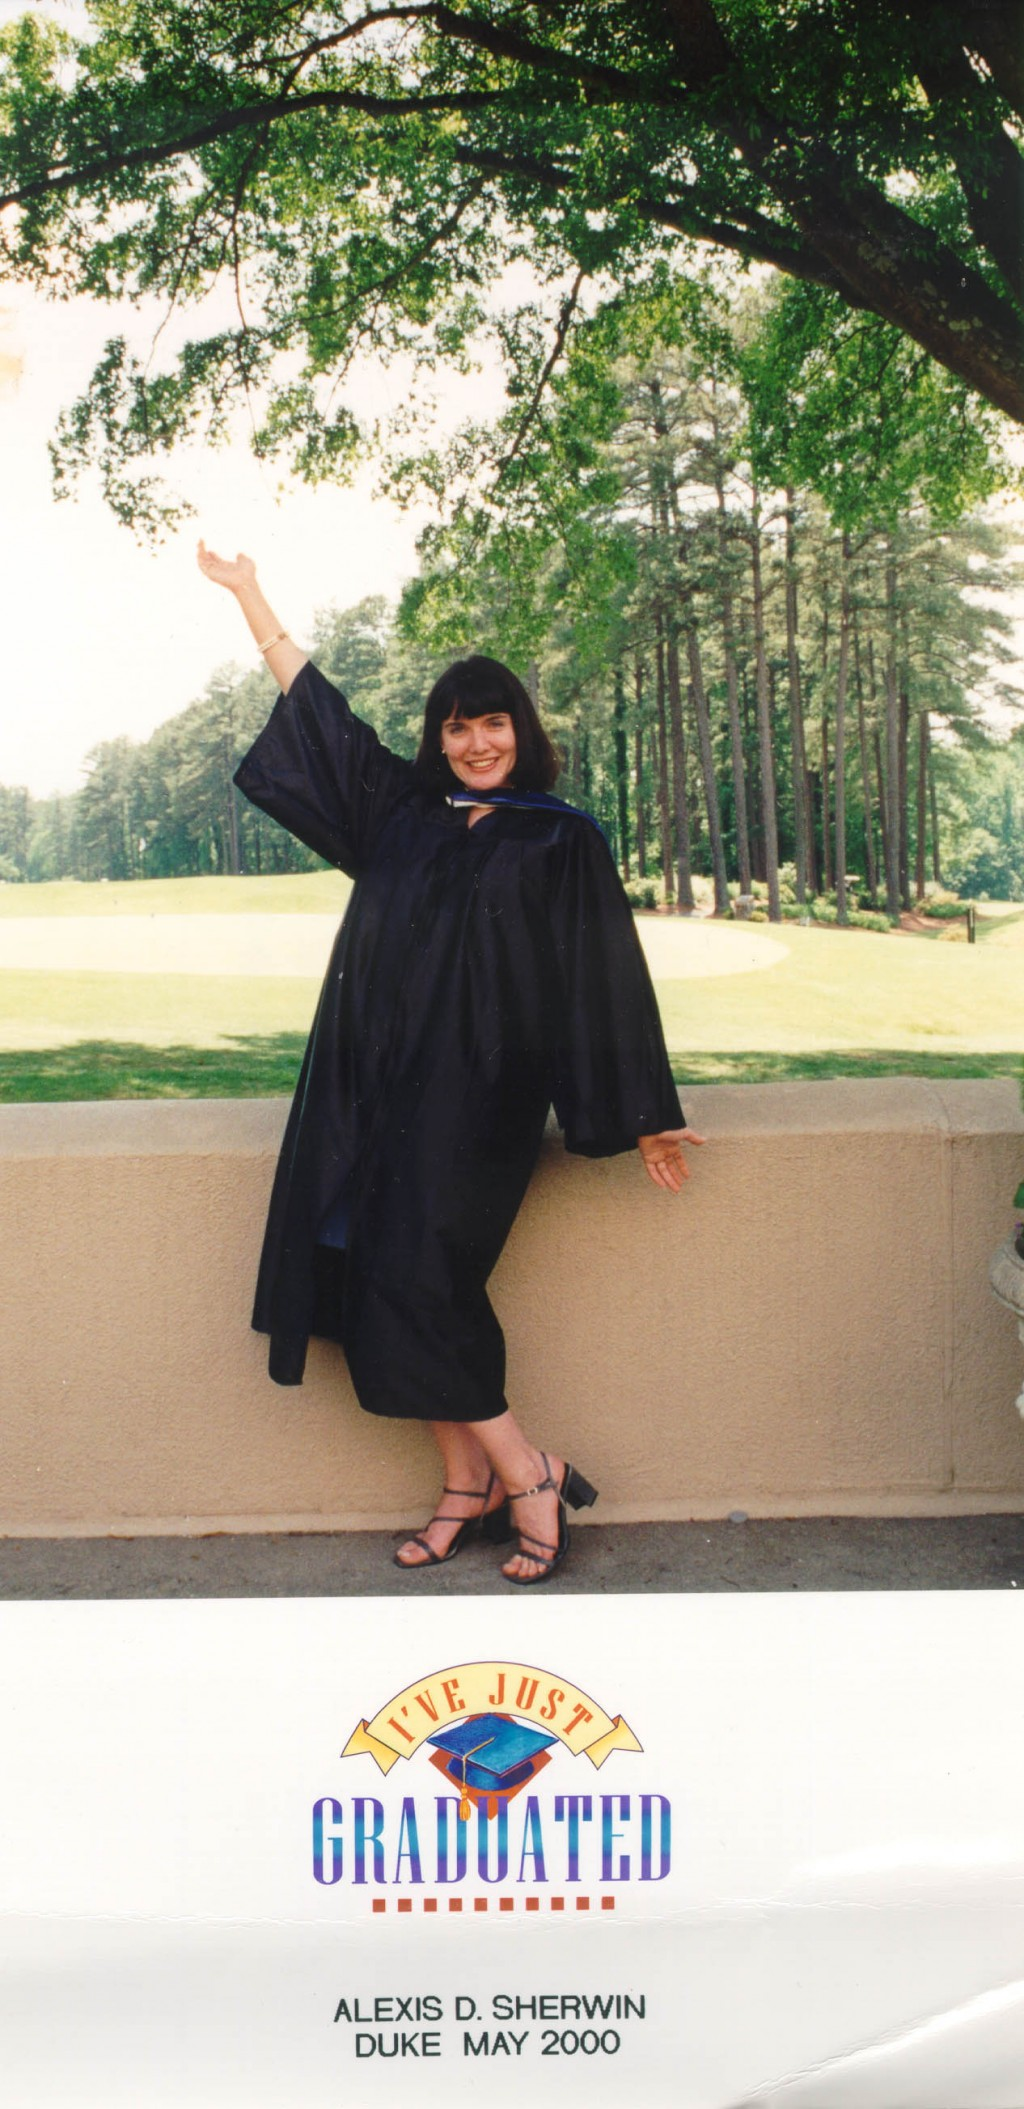 Blanka's granddaughter Alexis Danielle graduates from university in May 2000.